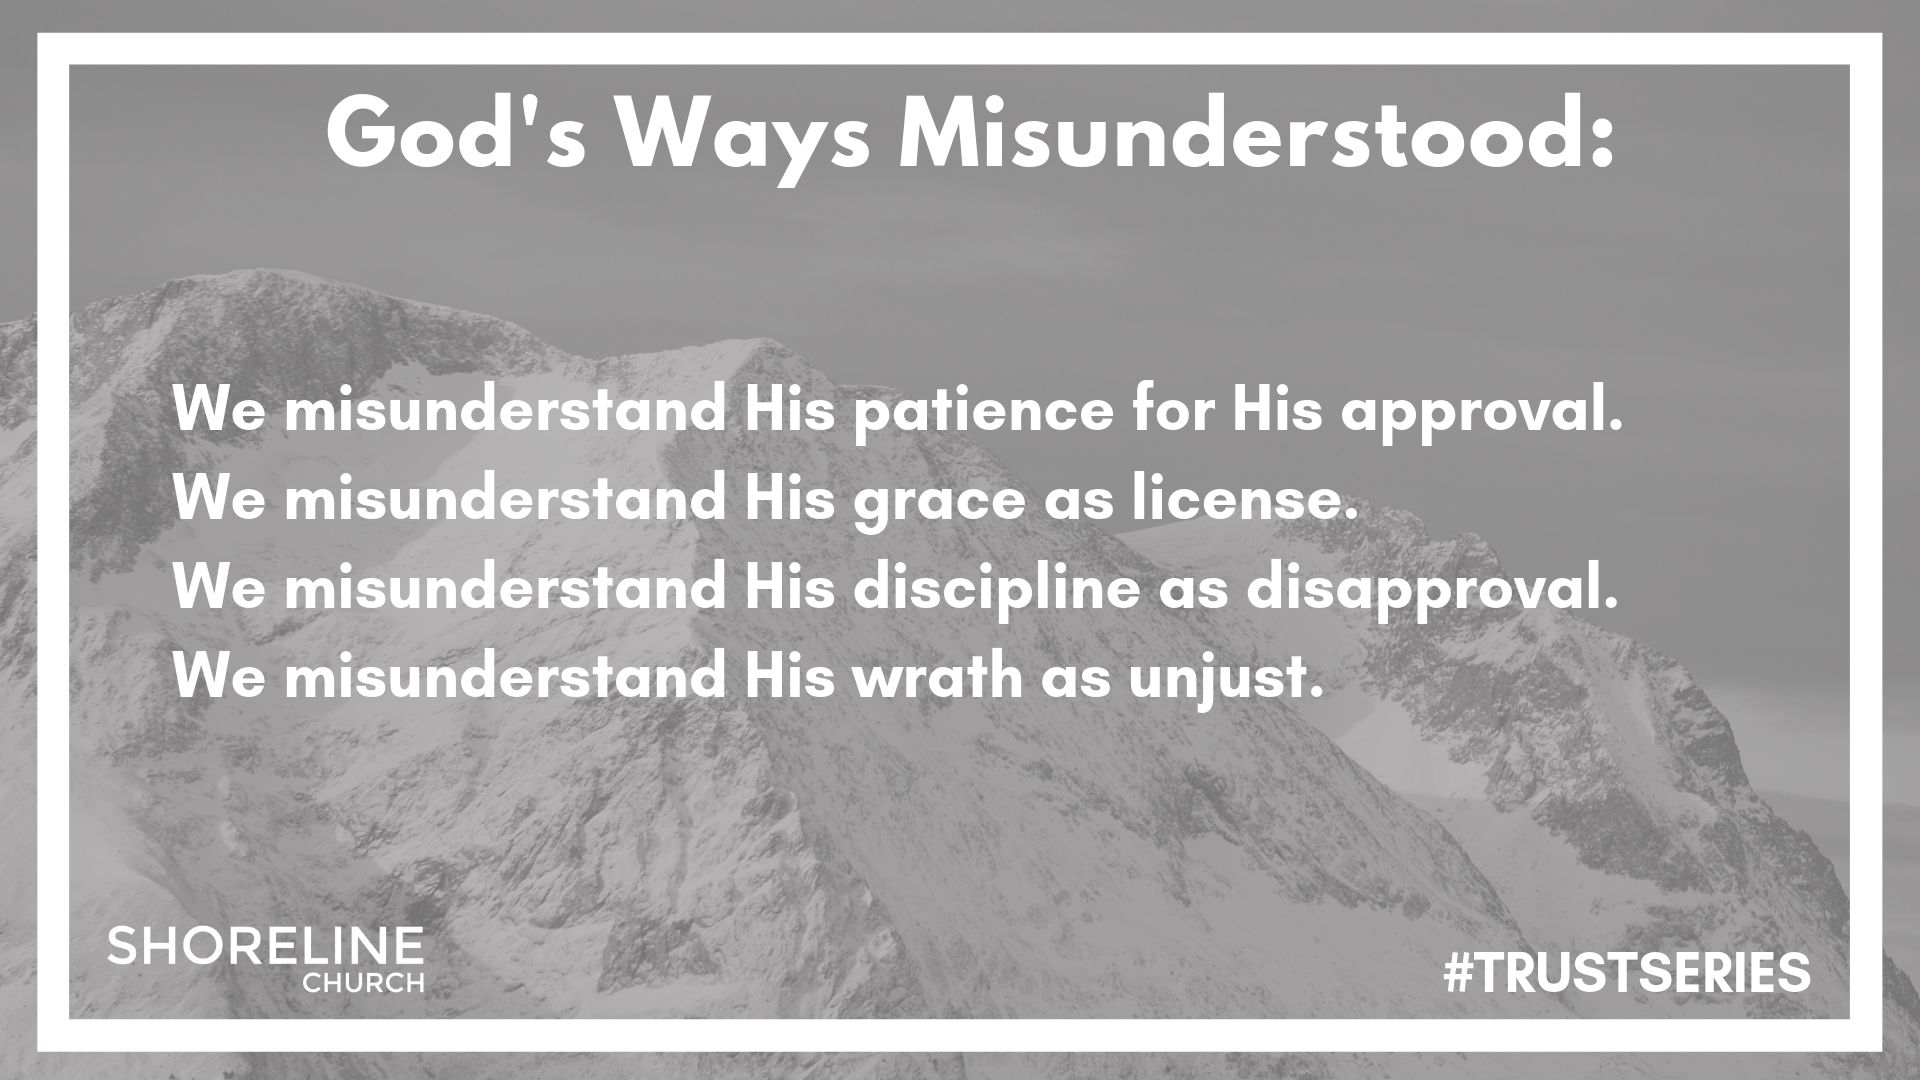 HOW WE MISUNDERSTAND GOD'S WAYS